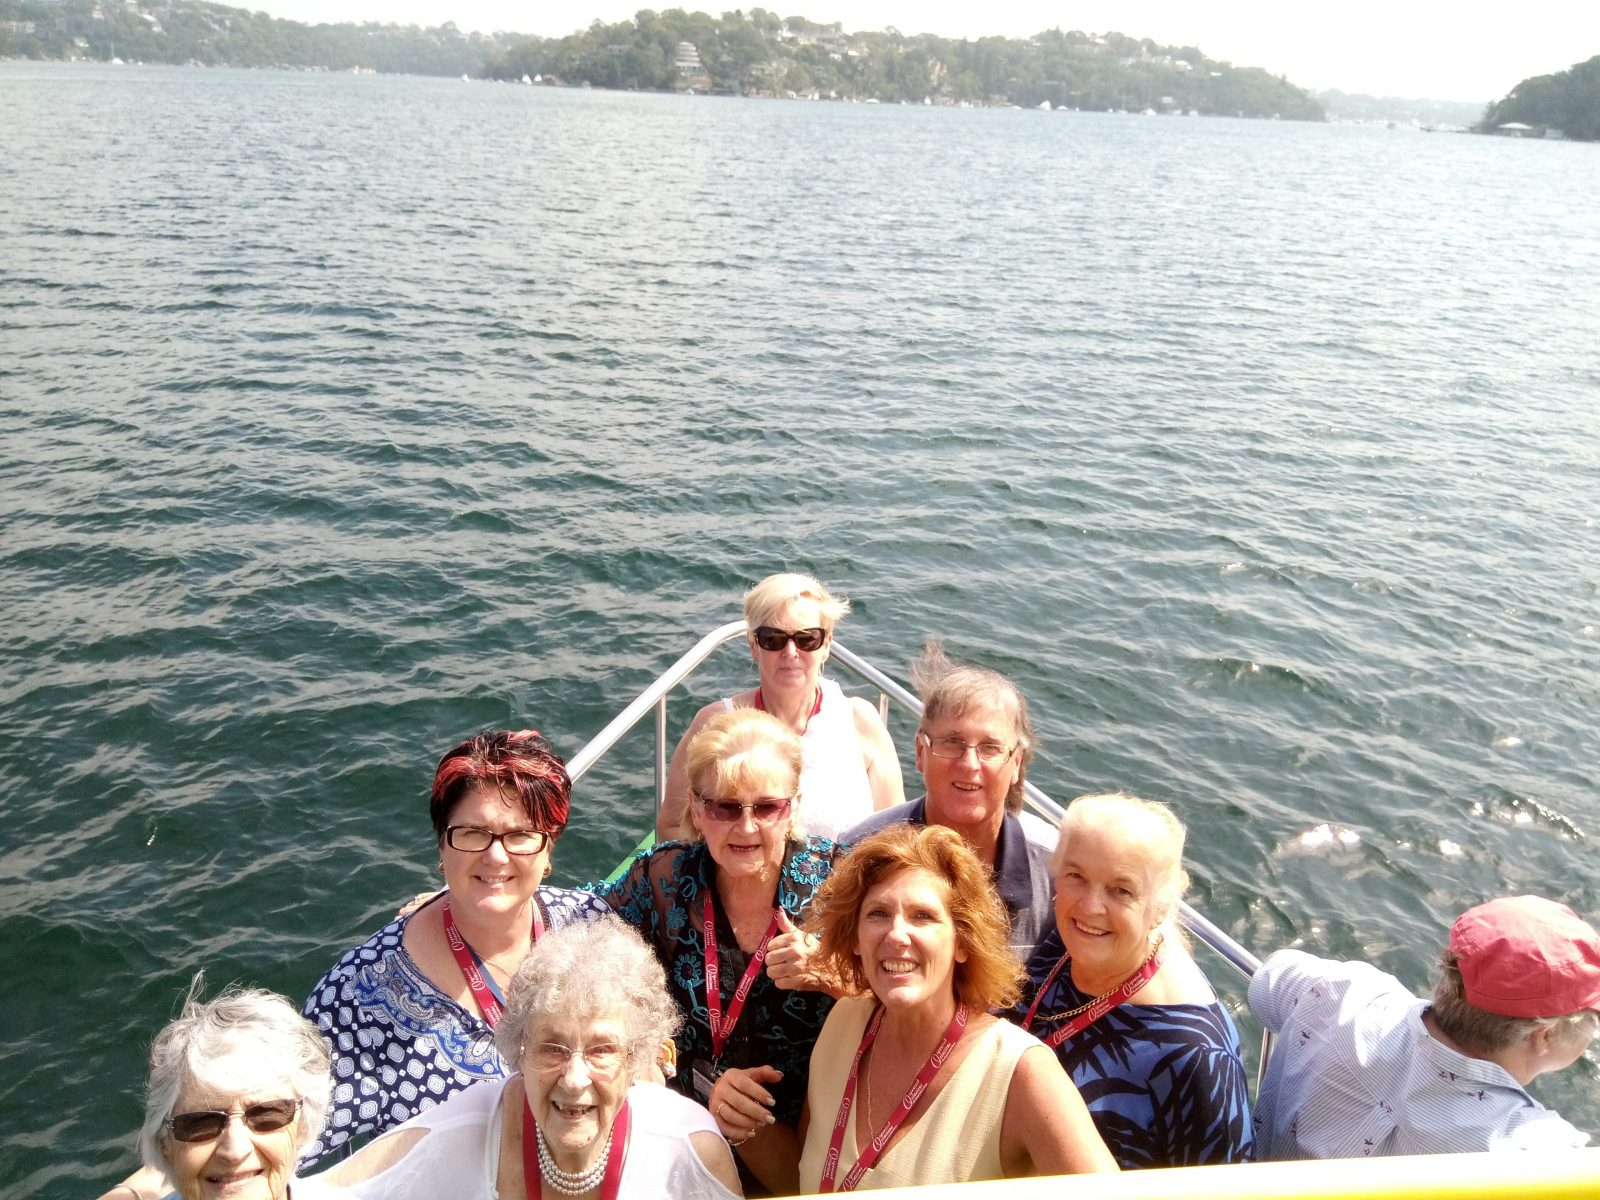 Port Hacking Scenic River Cruise Discover in three hours what Bass & Flinders discovered in 3 days.